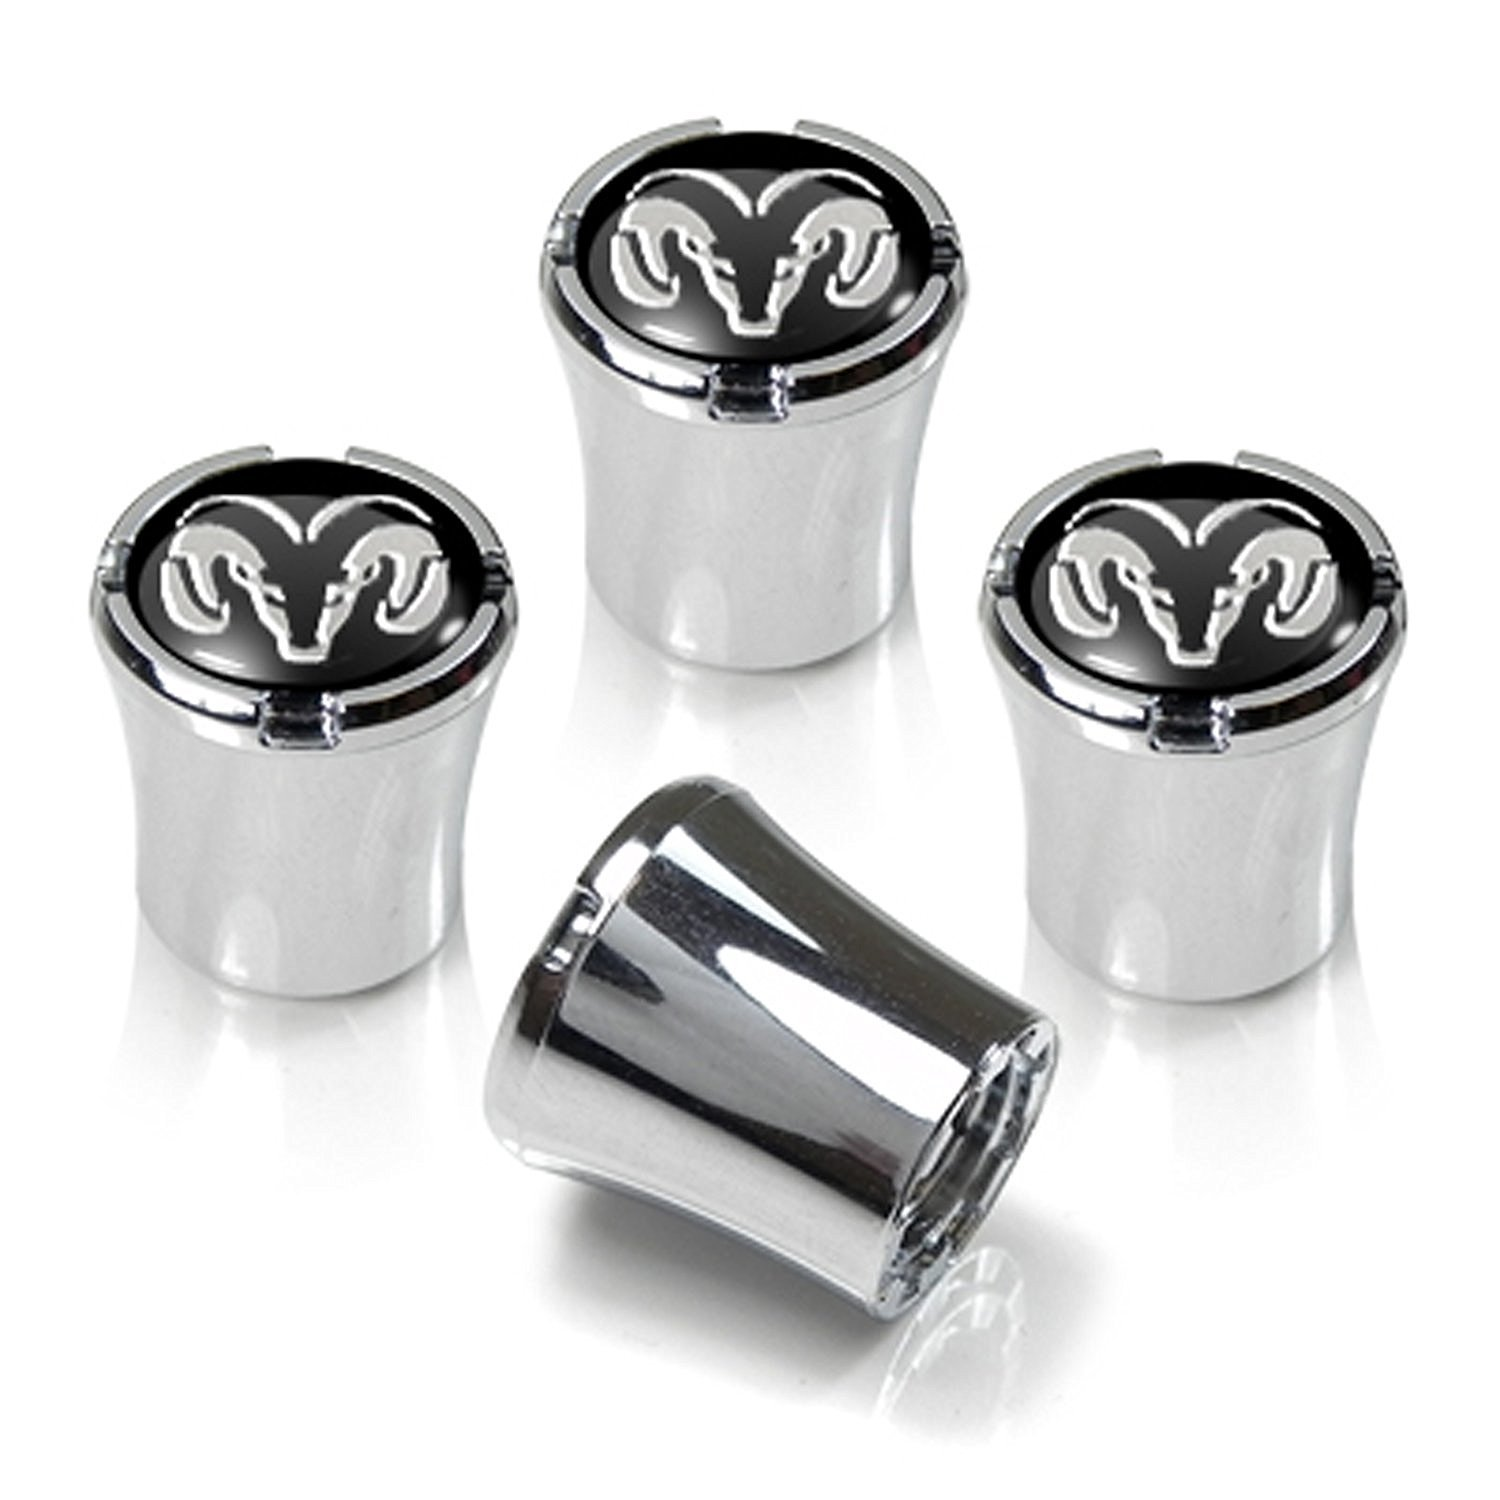 CzlpV 4 Pcs Black Tire Valve Stem Caps for Dodge Ram